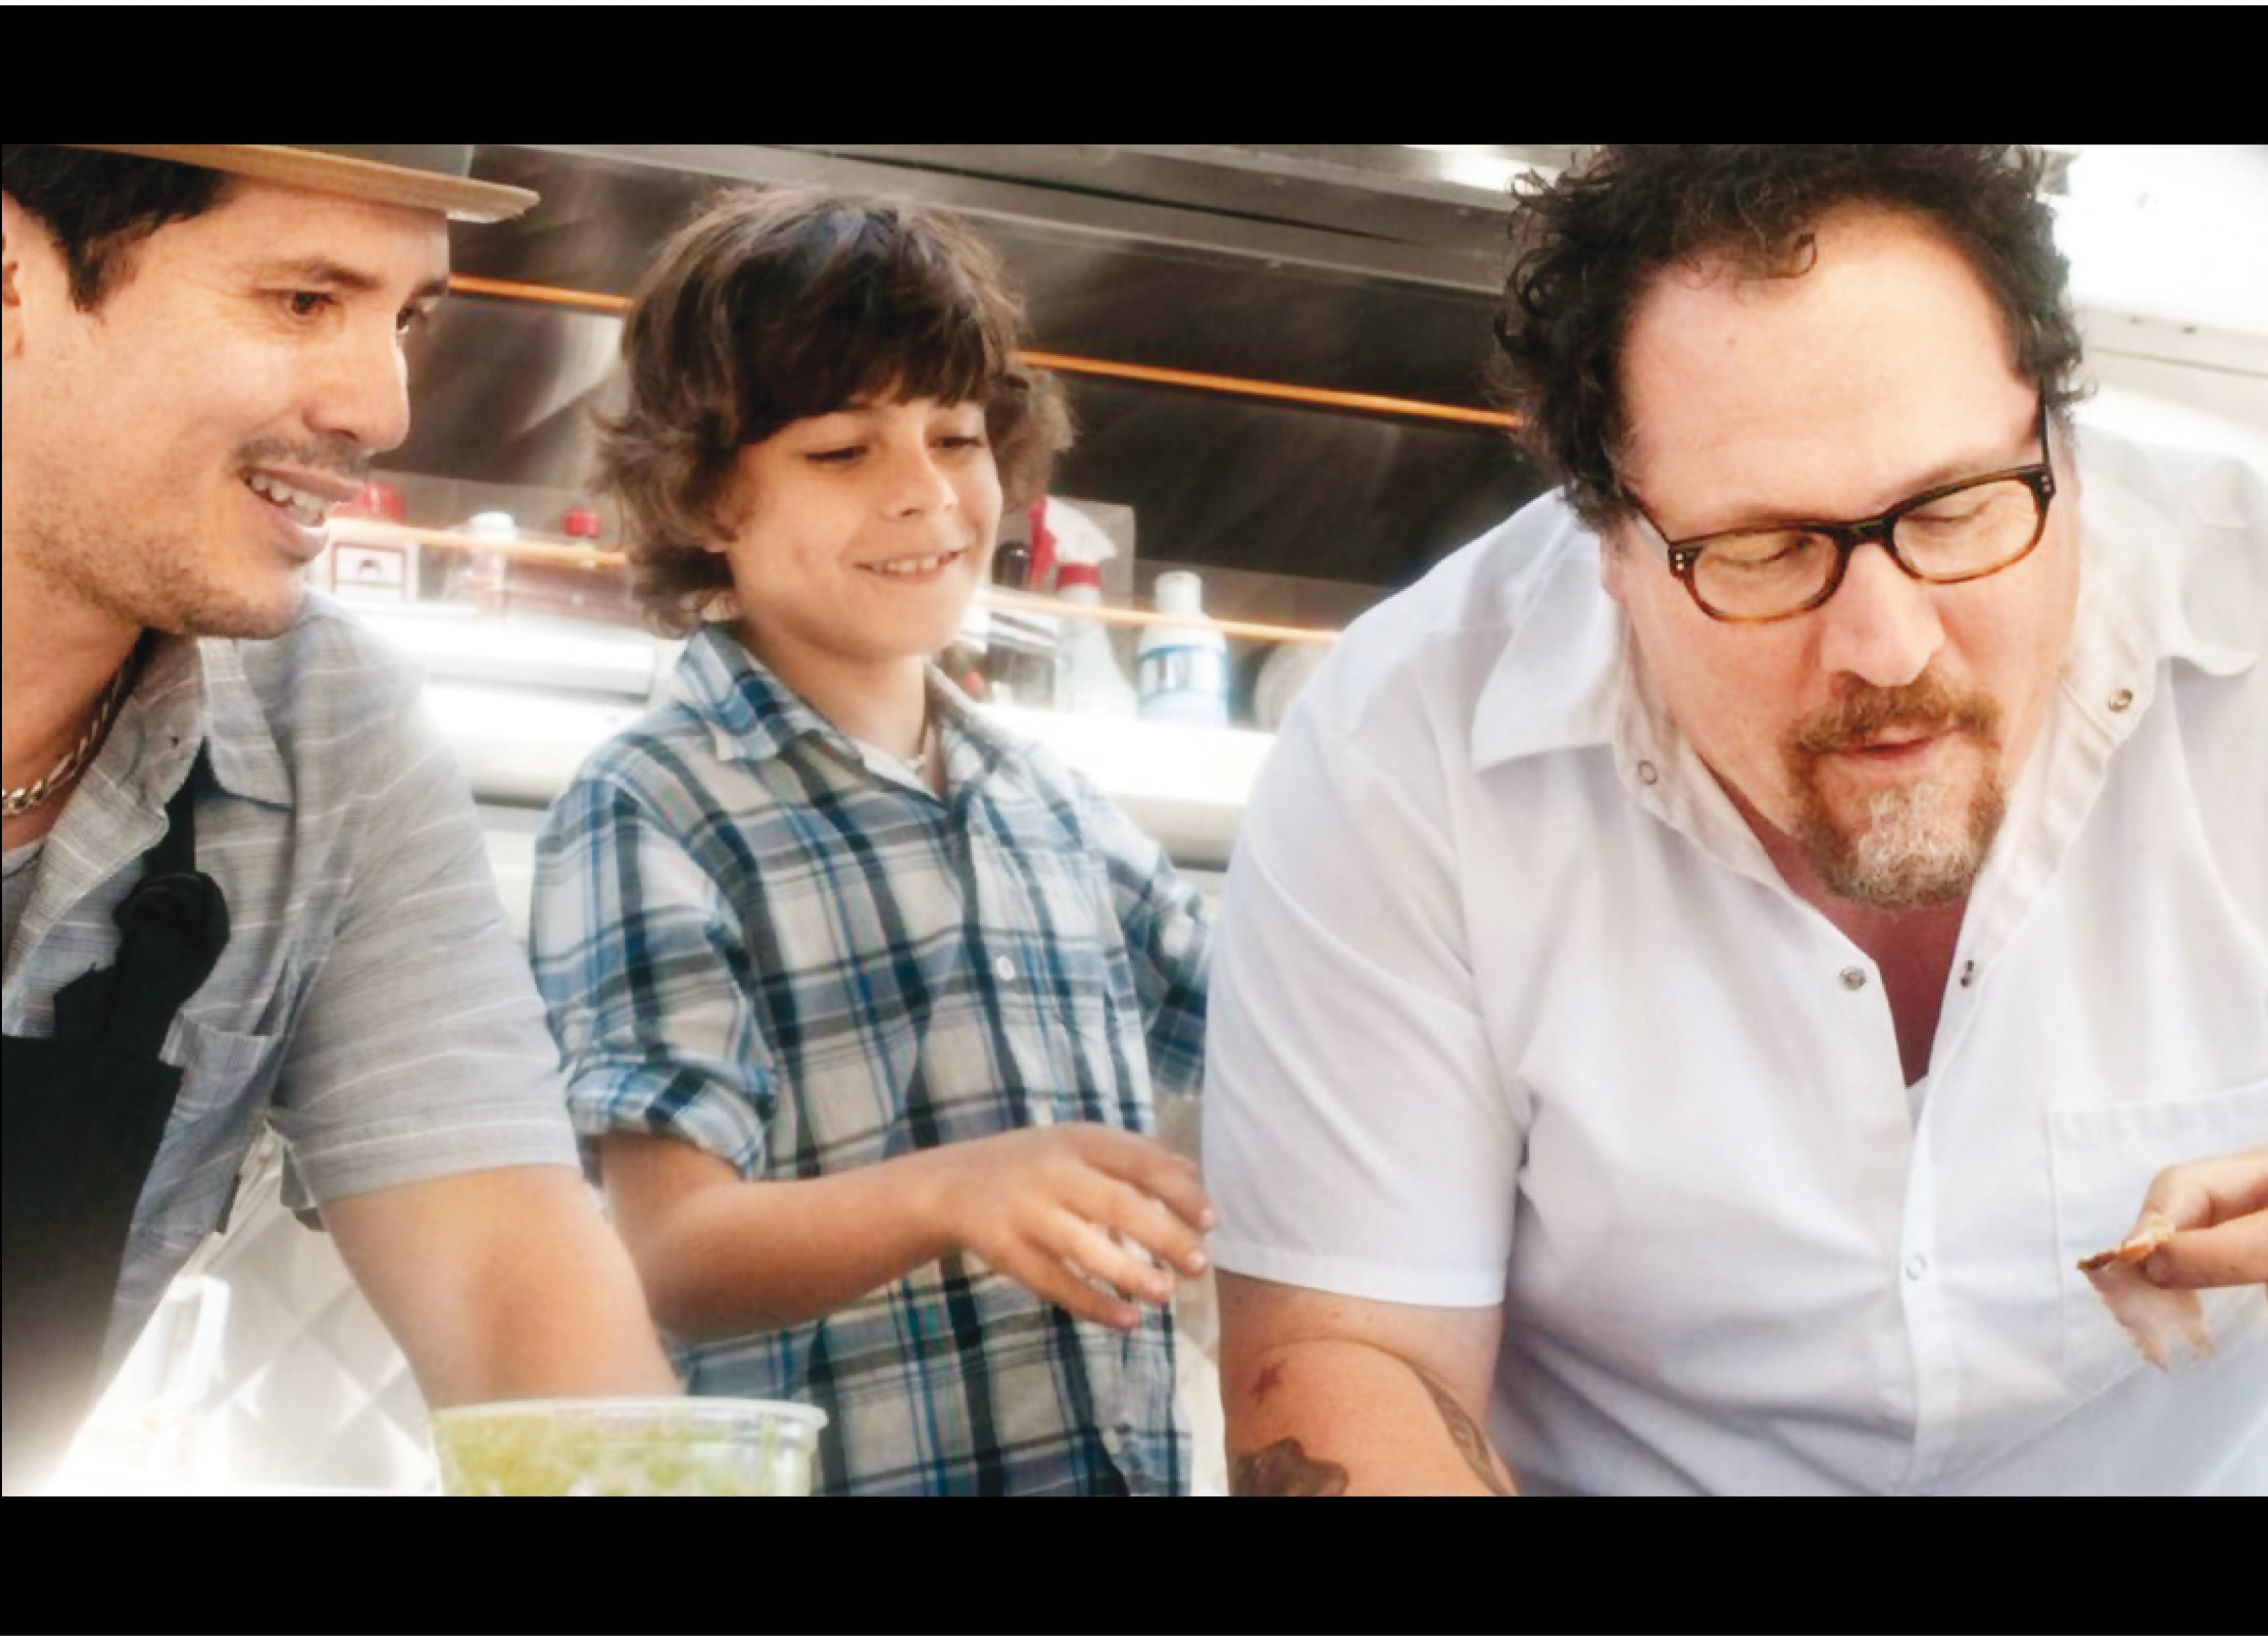 In the movie Chef, the chef-hero berates the critic for not understanding the construction of the dessert